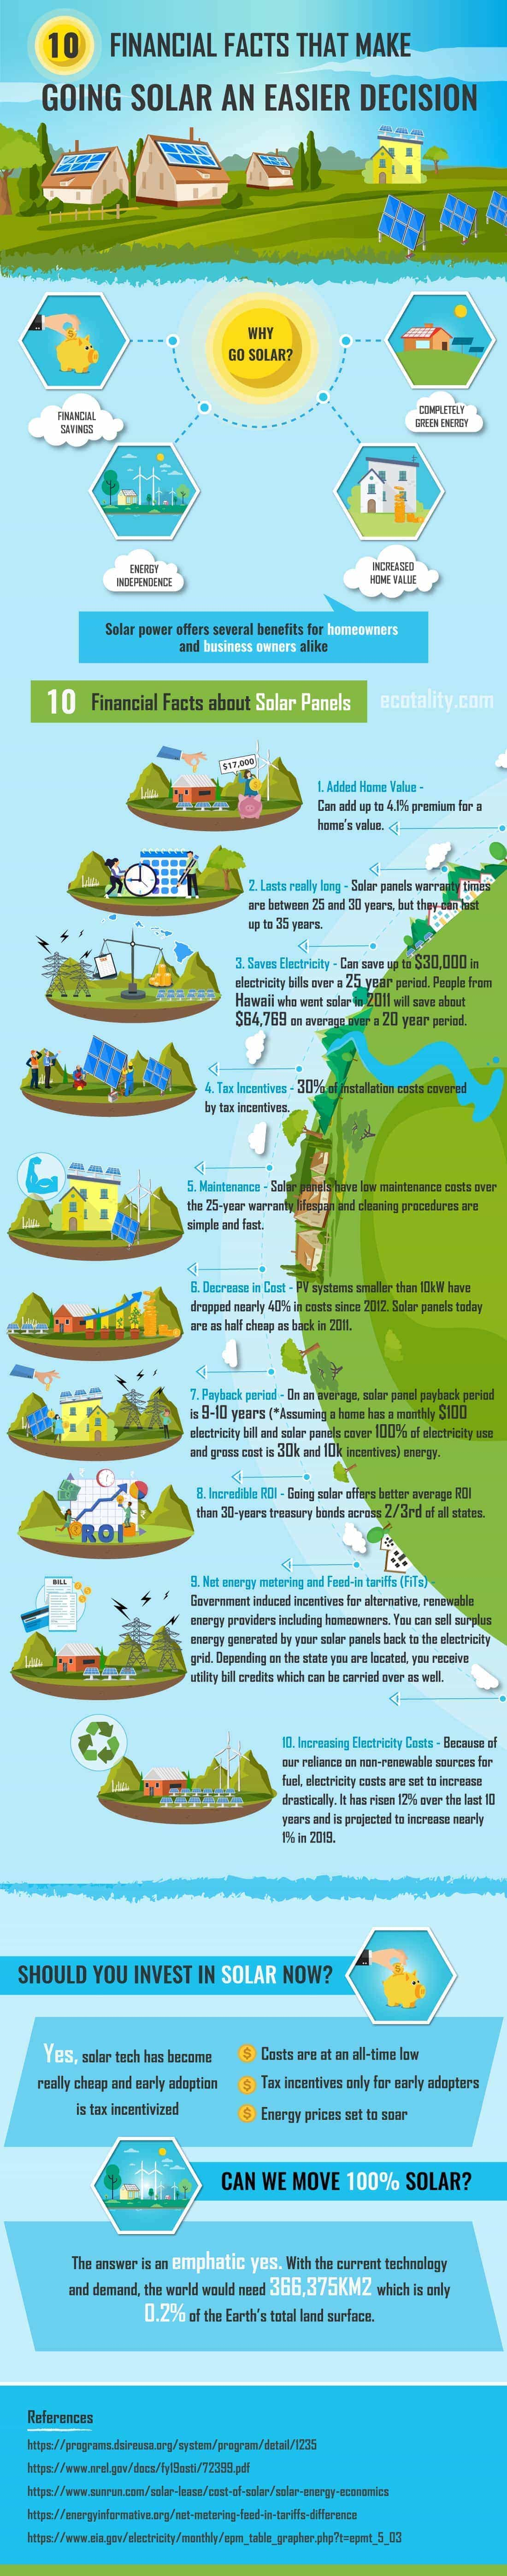 10 Financial Facts That Make Going Solar an Easier Decision -Infographic